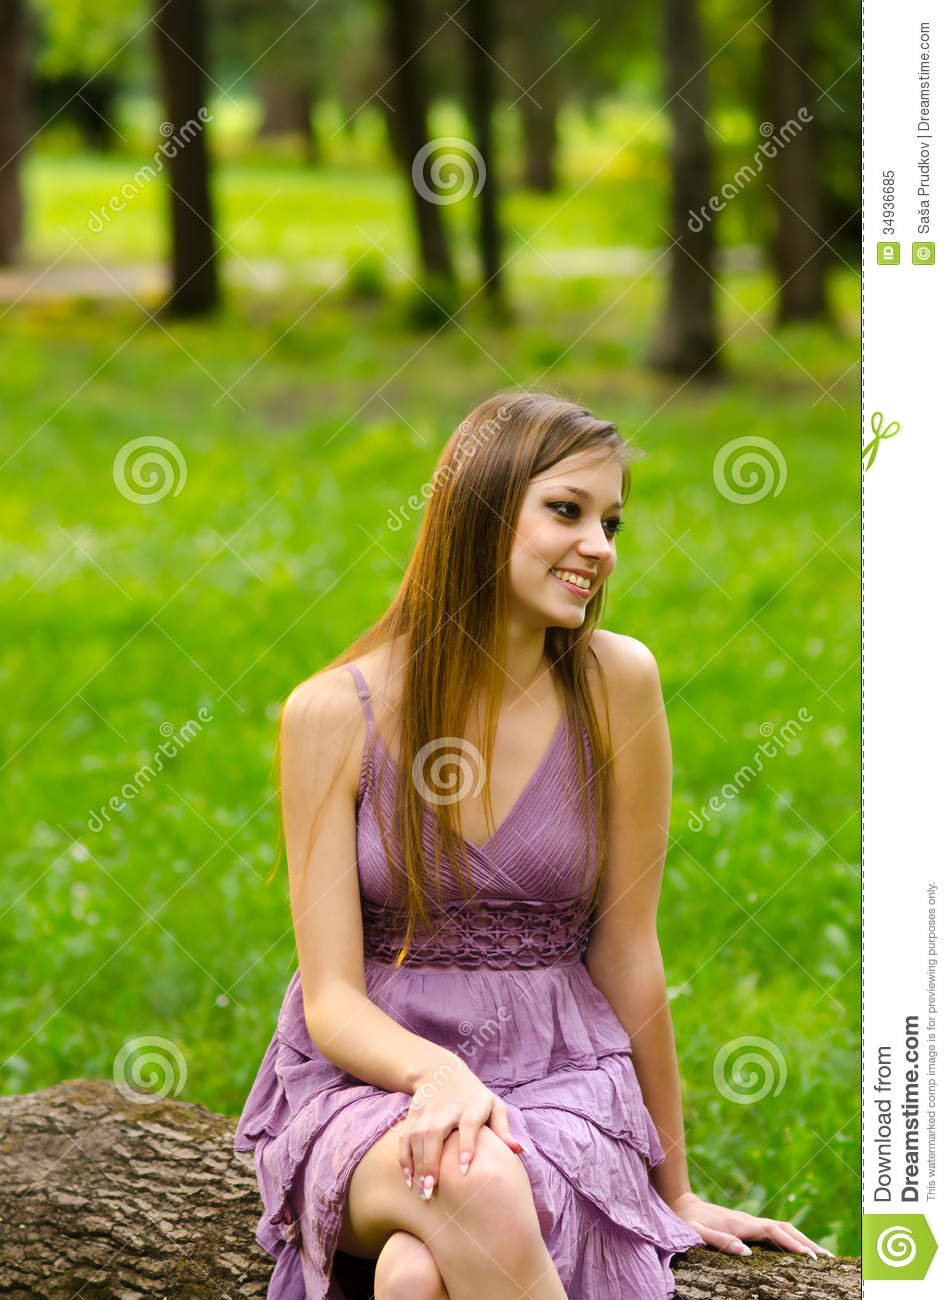 Beautiful Girl Sitting In The Park Royalty Free Stock